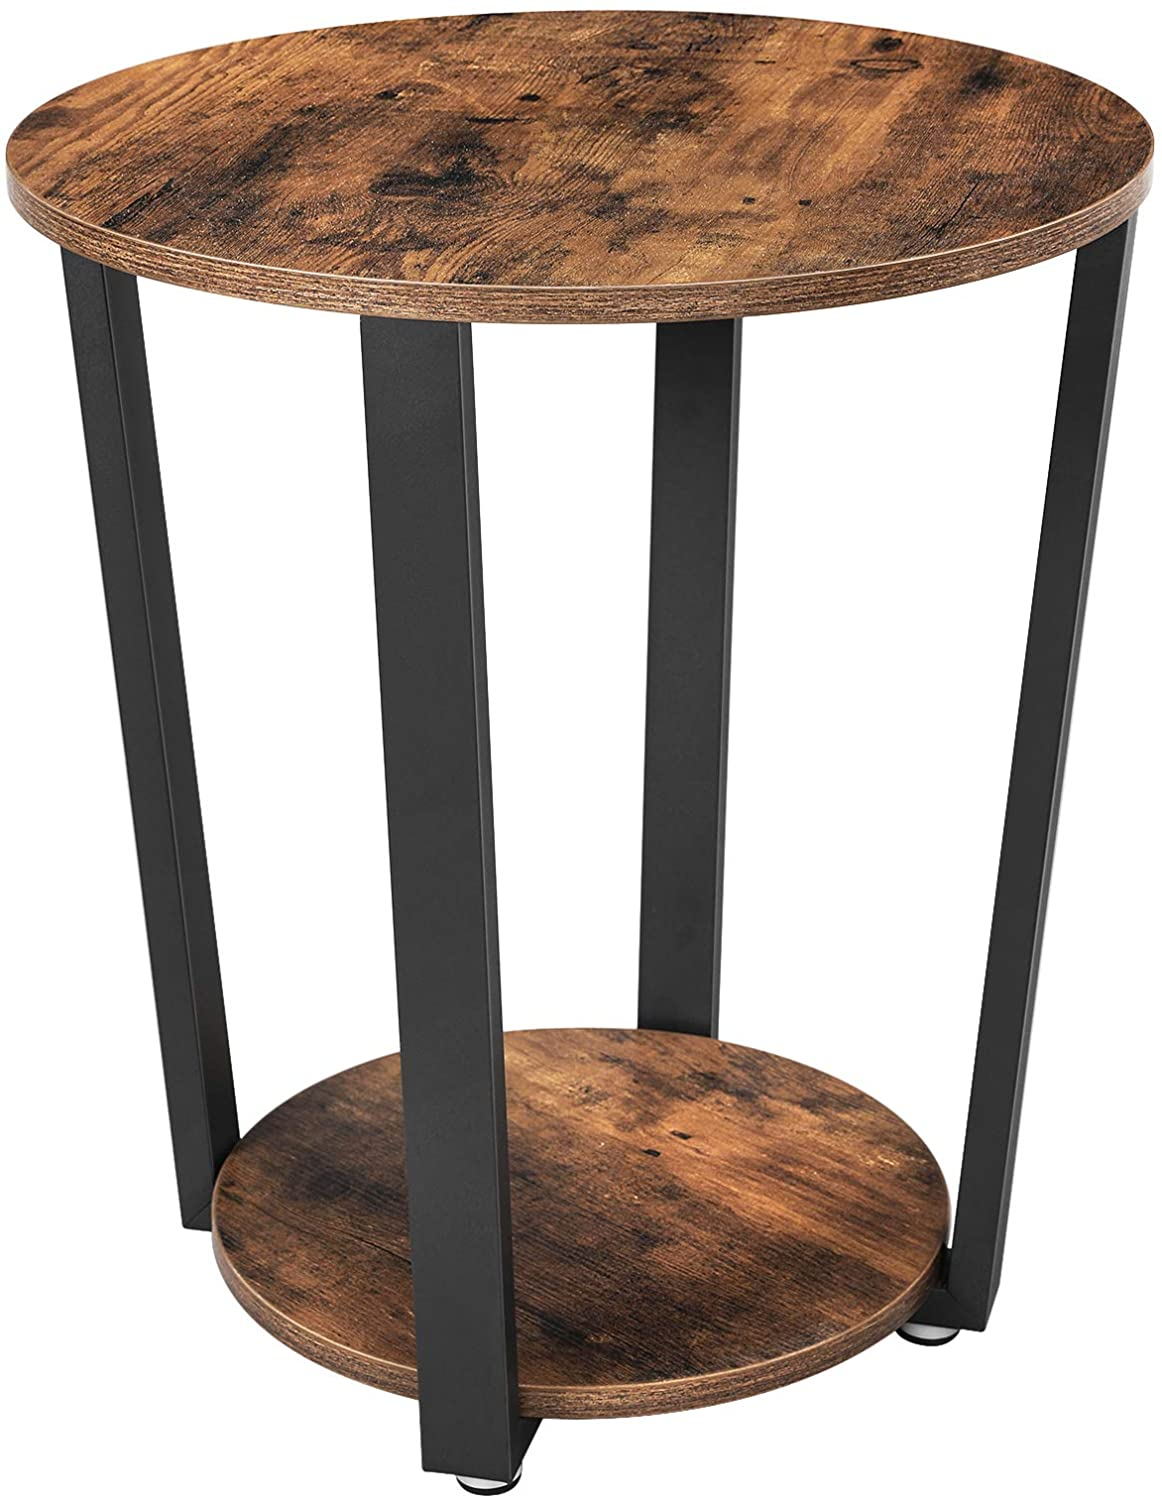 Enjoy fast, free nationwide shipping!  Family owned and operated, HawkinsWoodshop.com is your one stop shop for affordable furniture.  Shop HawkinsWoodshop.com for solid wood & metal modern, traditional, contemporary, industrial, custom, rustic, and farmhouse furniture including our Ryan Industrial Round Sofa Table.